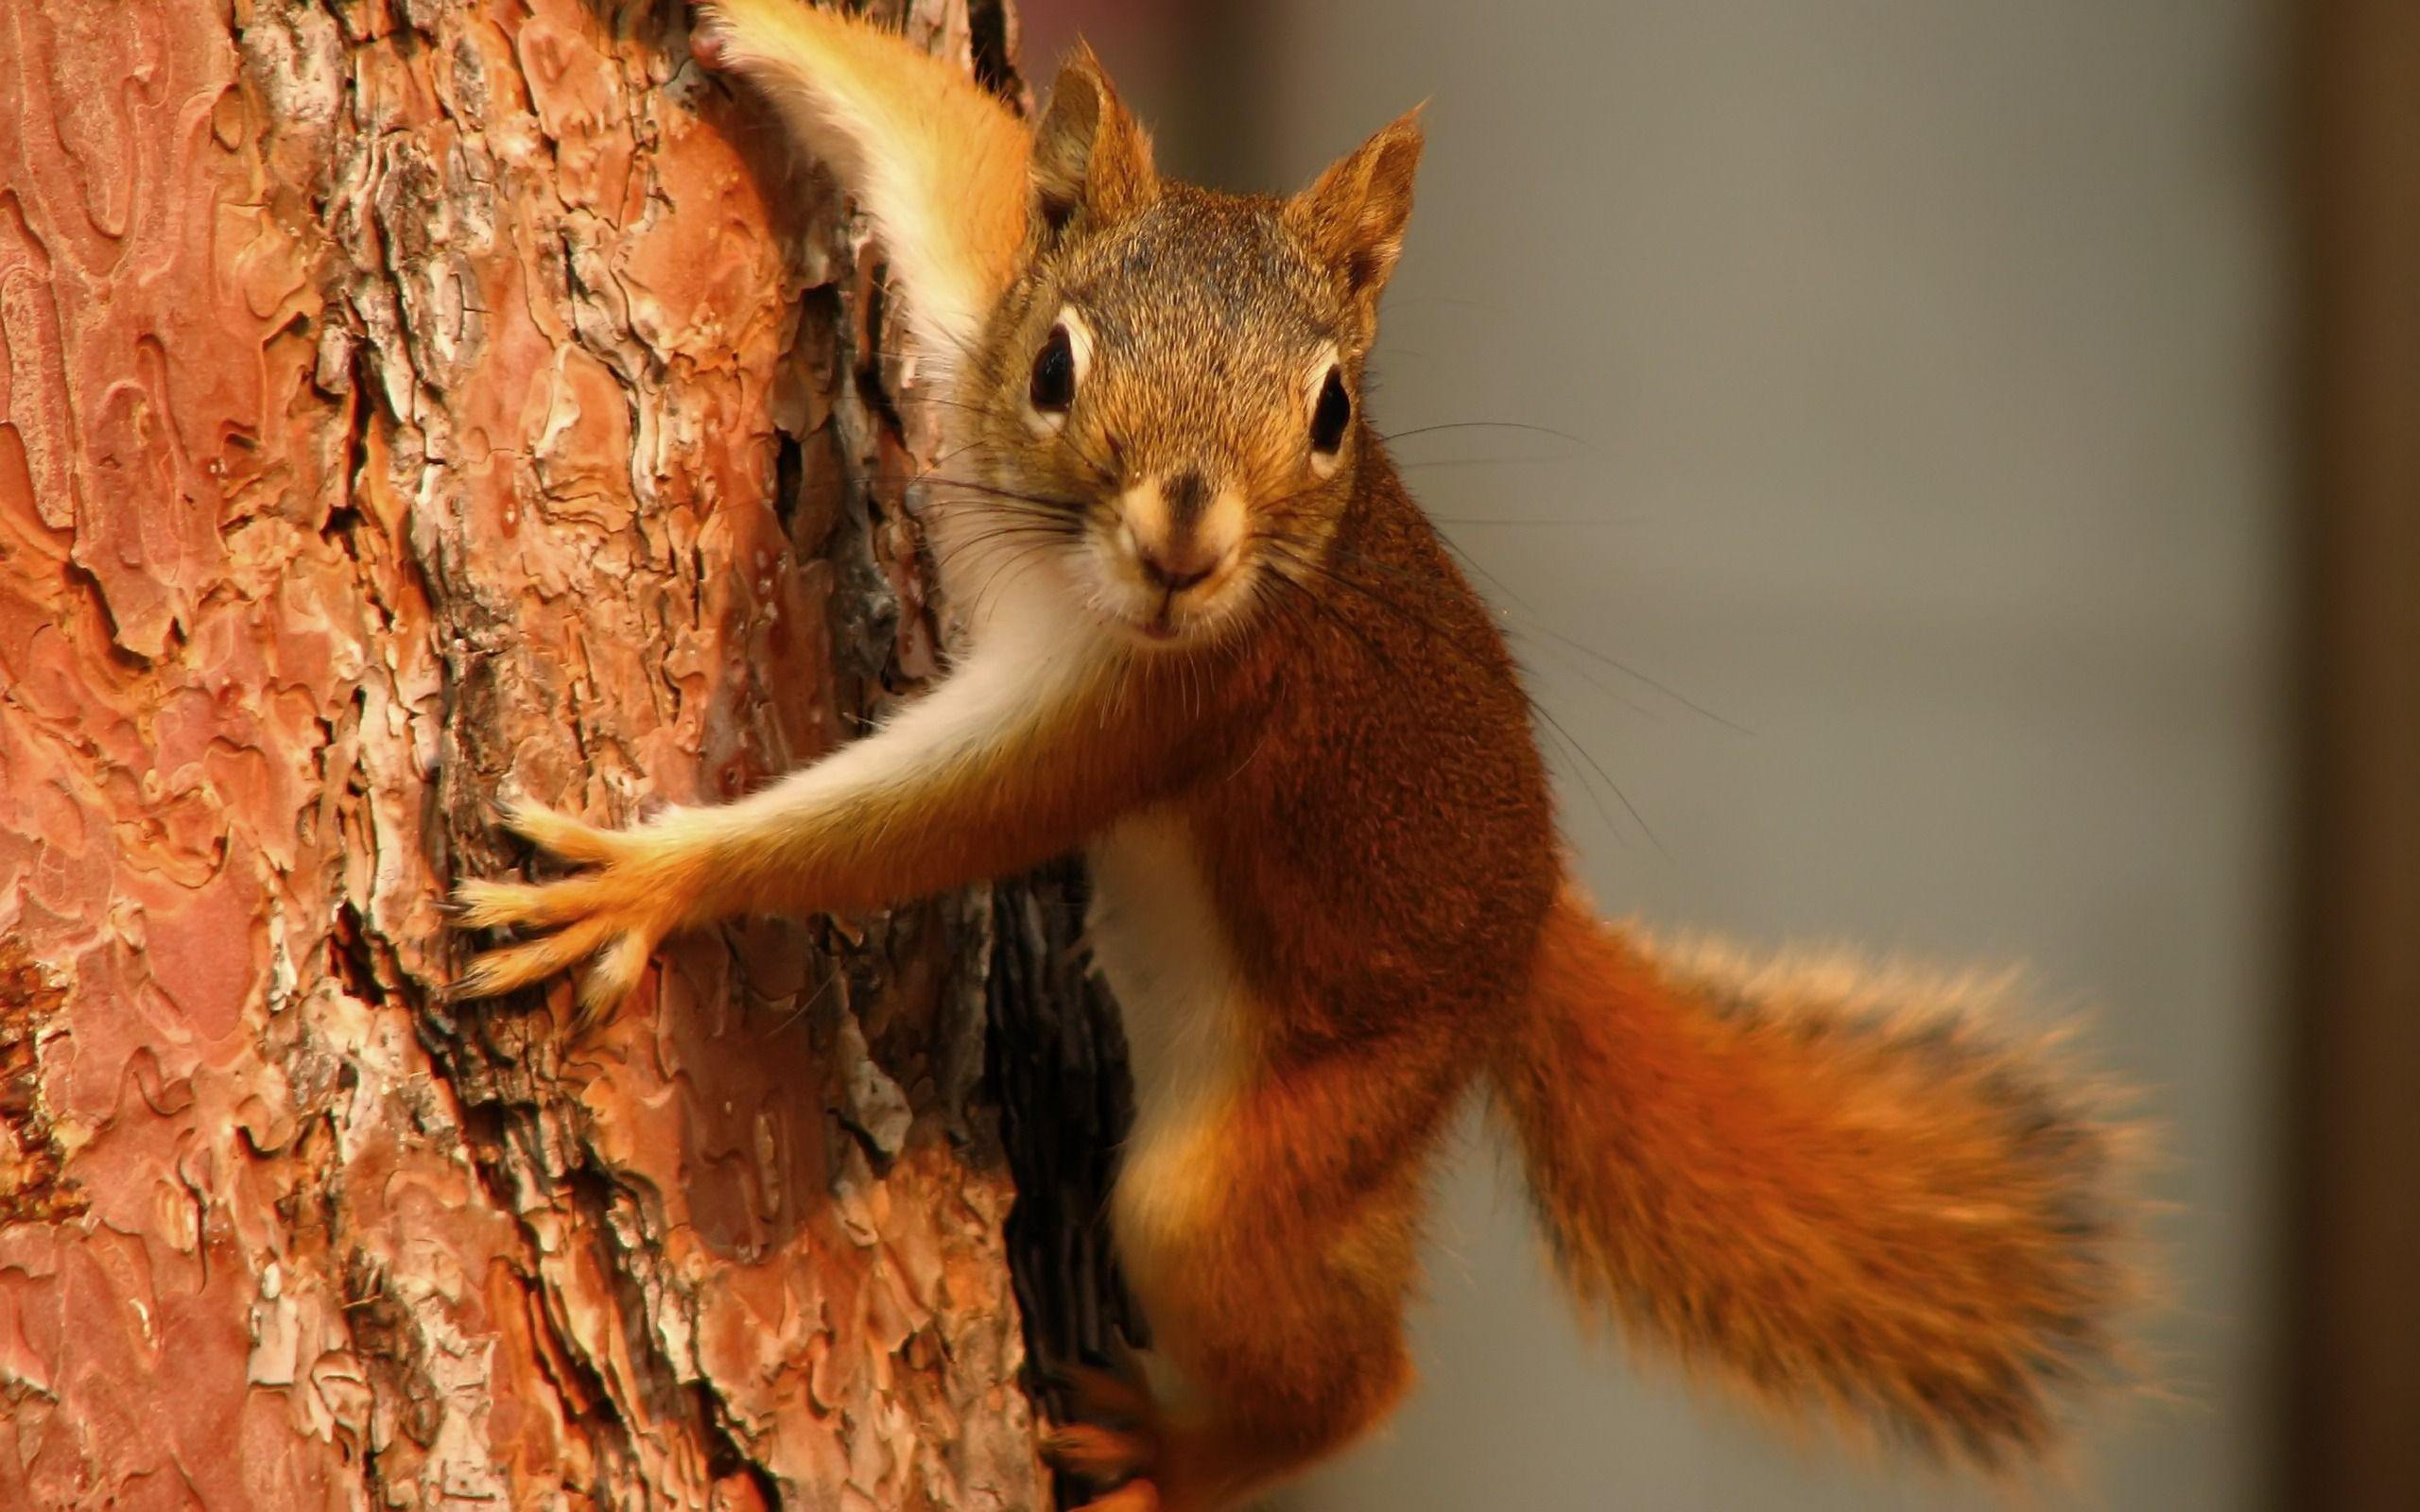 Squirrel Hd Wallpapers 39783 in Animals